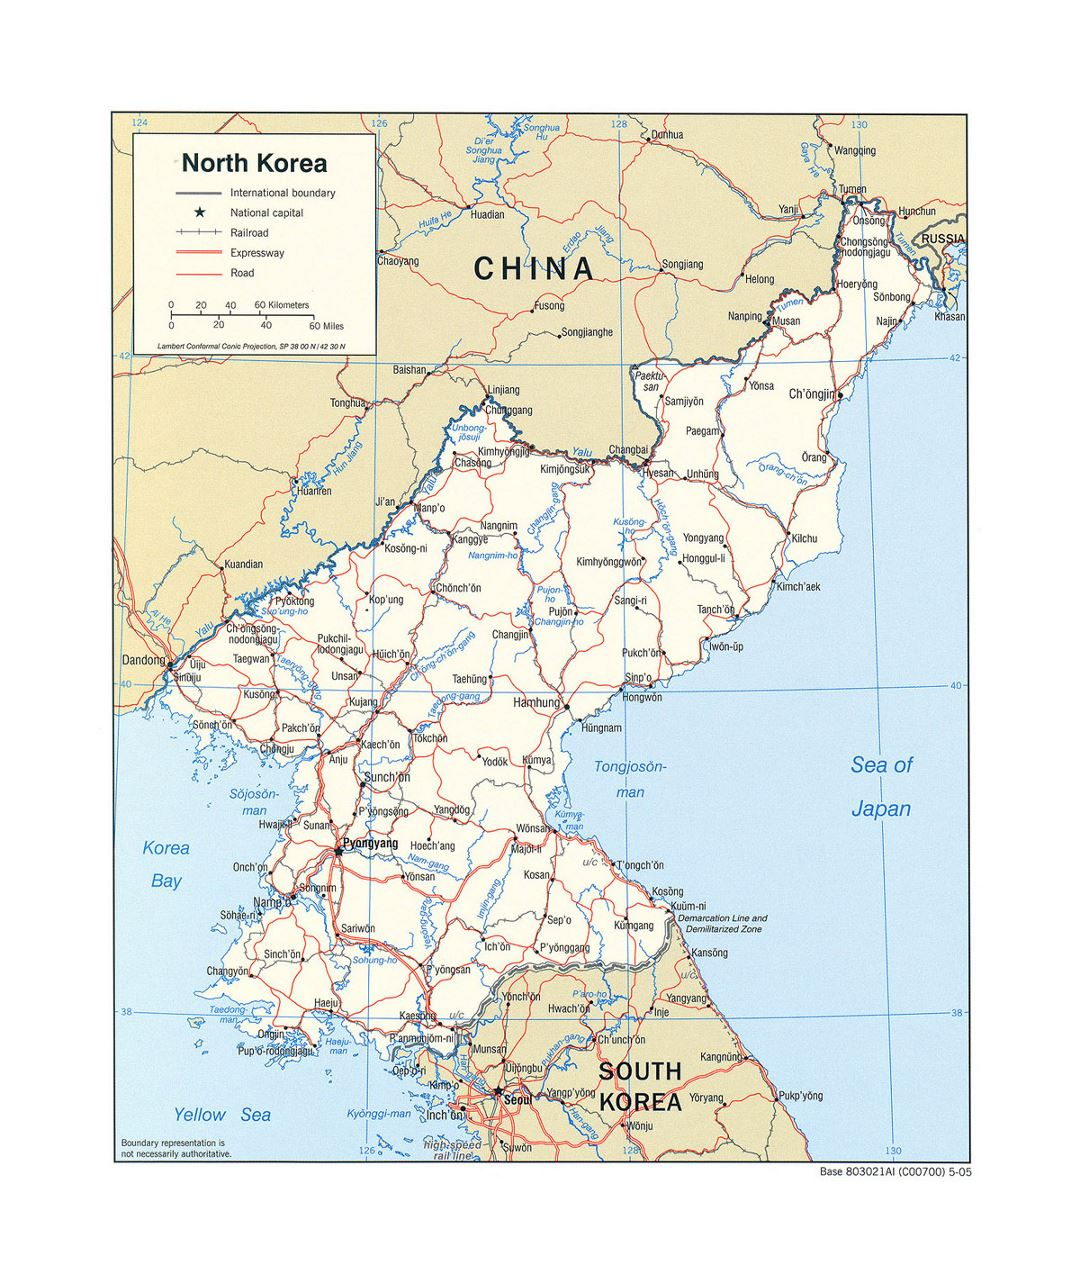 Detailed political map of North Korea with roads, railroads and major cities - 2005